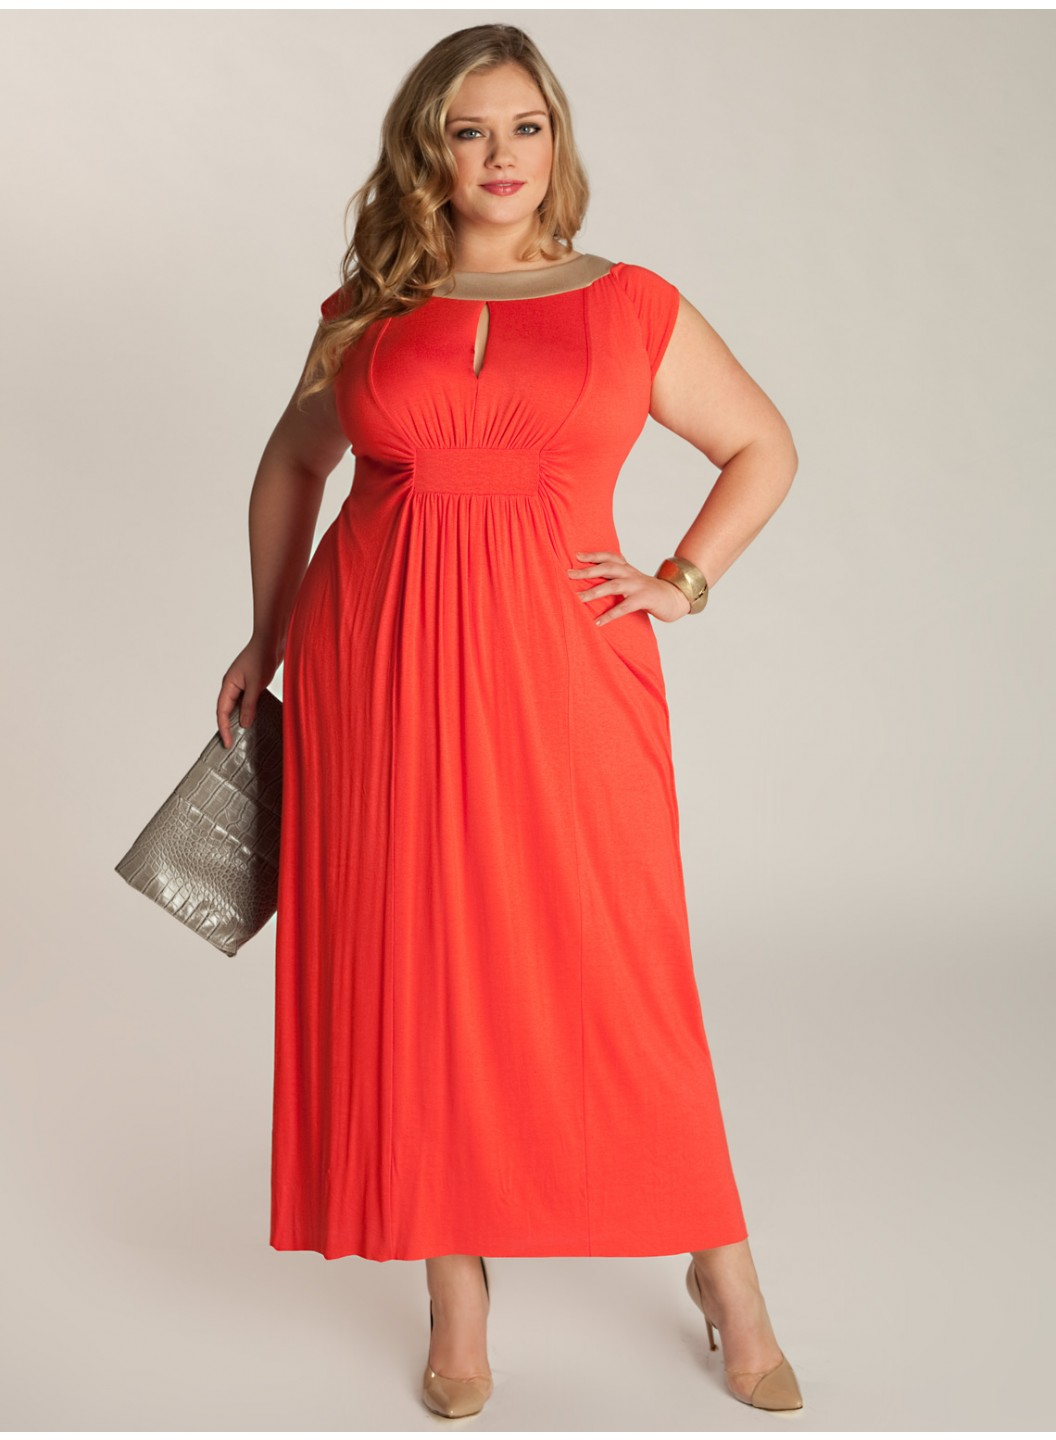 Plus Size Sundresses For Women 2014-2015 | Fashion Trends ...